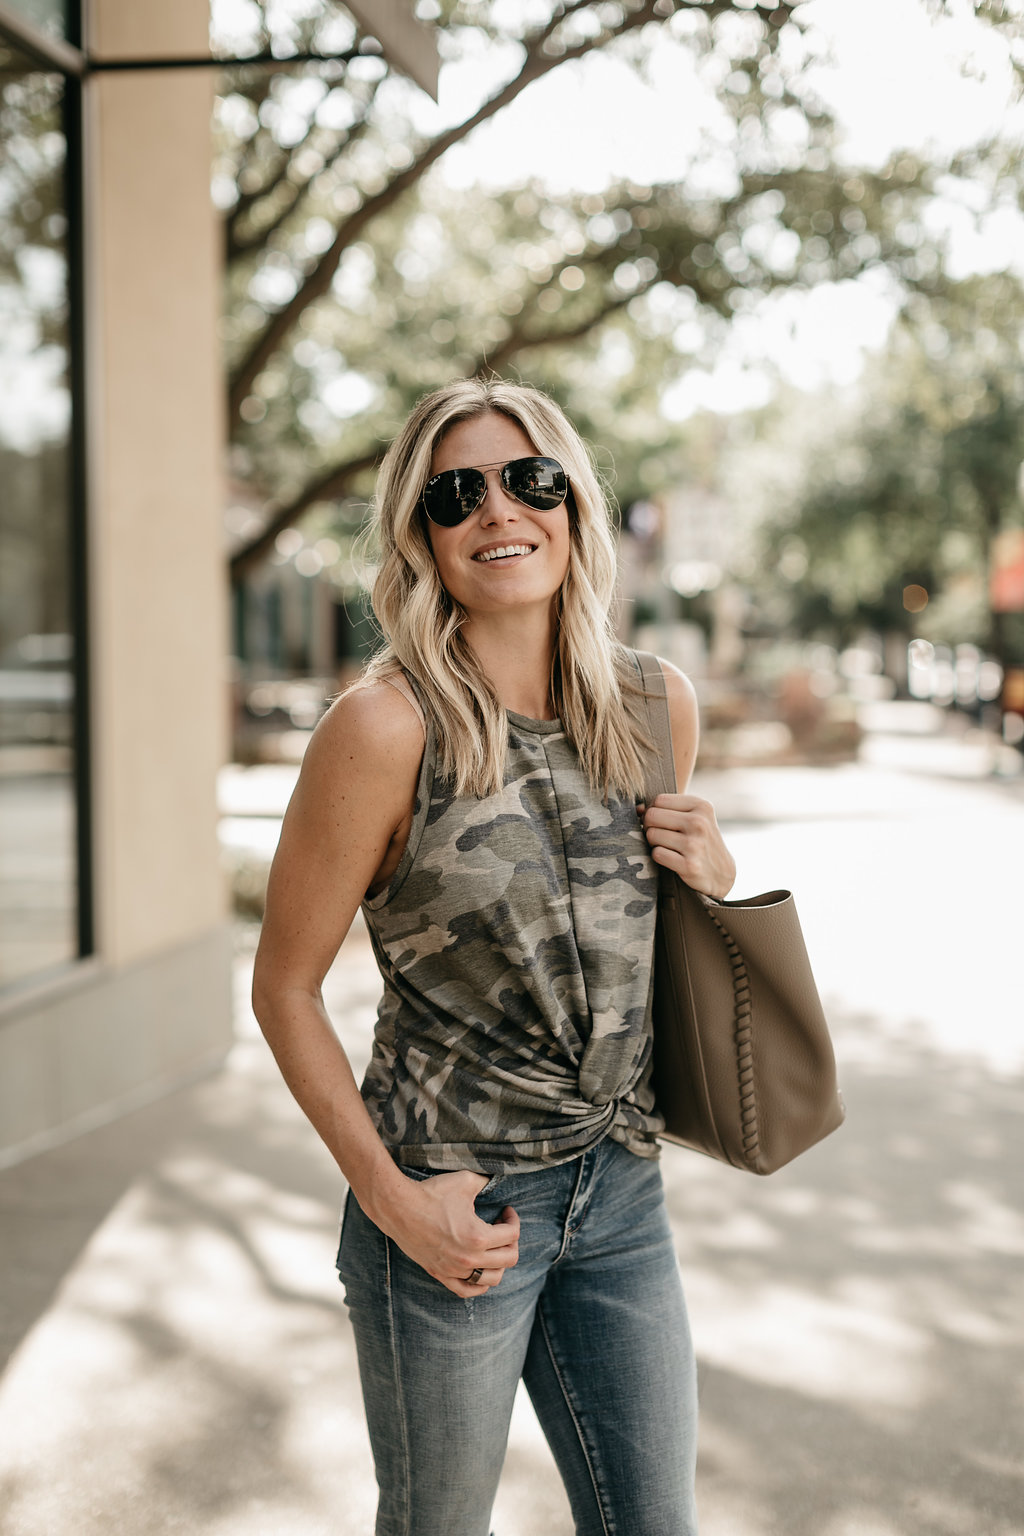 HOW TO WEAR CAMO THIS FALL